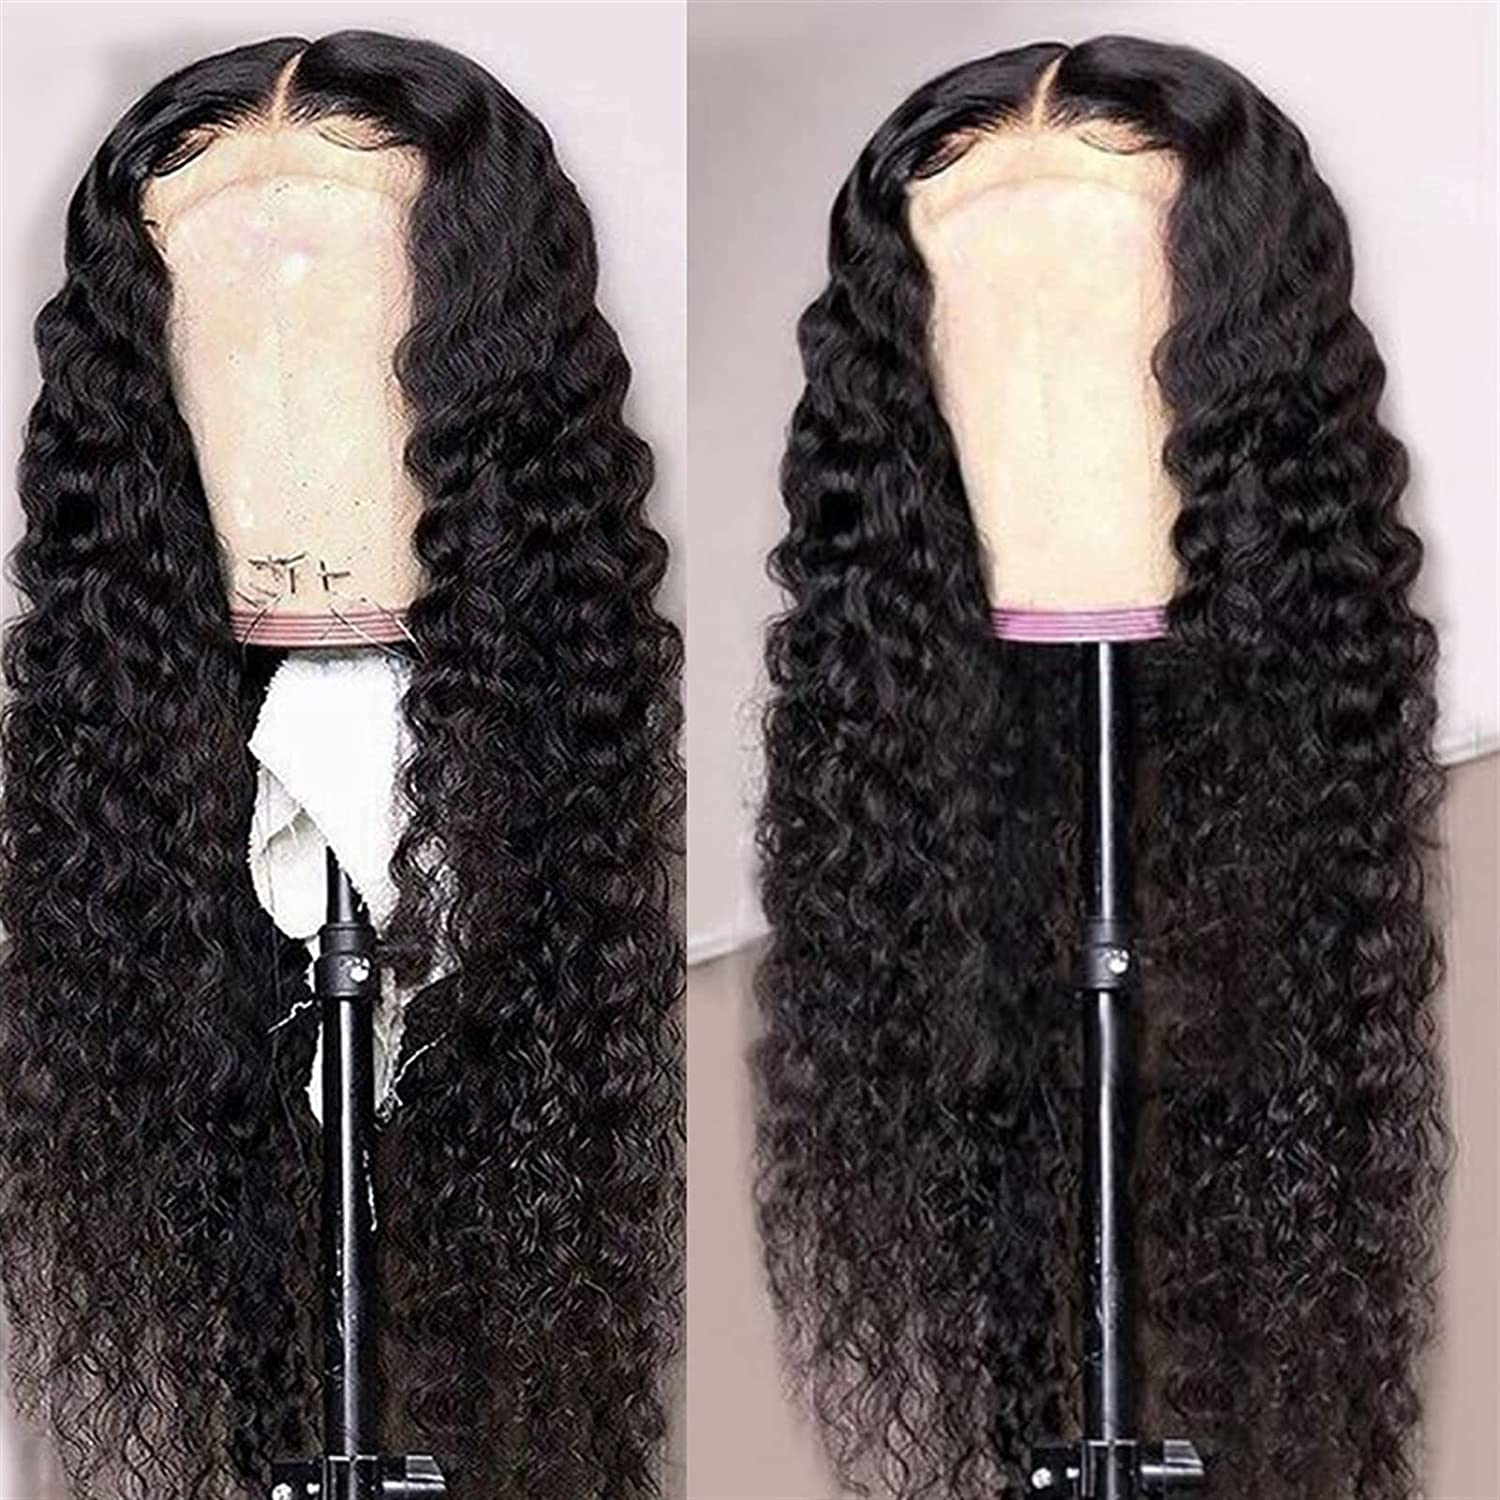 wig Frontal Wig HD trust Transparent 5x5 Curly Lace H Closure New mail order Deep